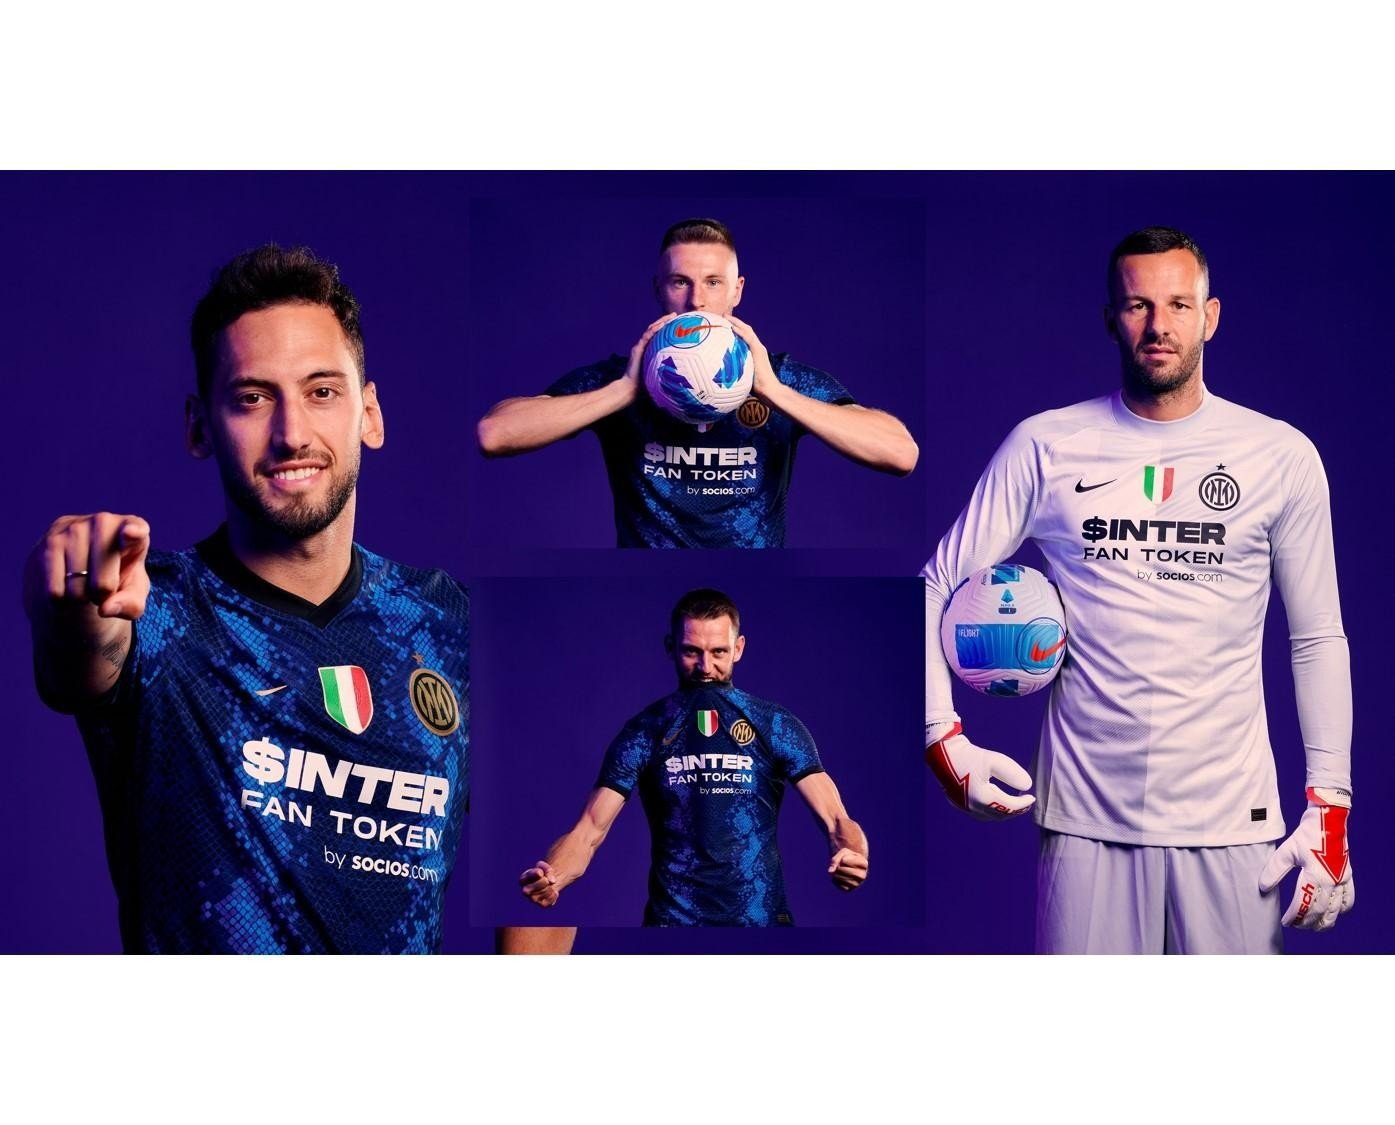 INTER ANNOUNCE SOCIOS.COM AS NEW FRONT-OF-SHIRT PARTNER FOR 2021/22 SEASON